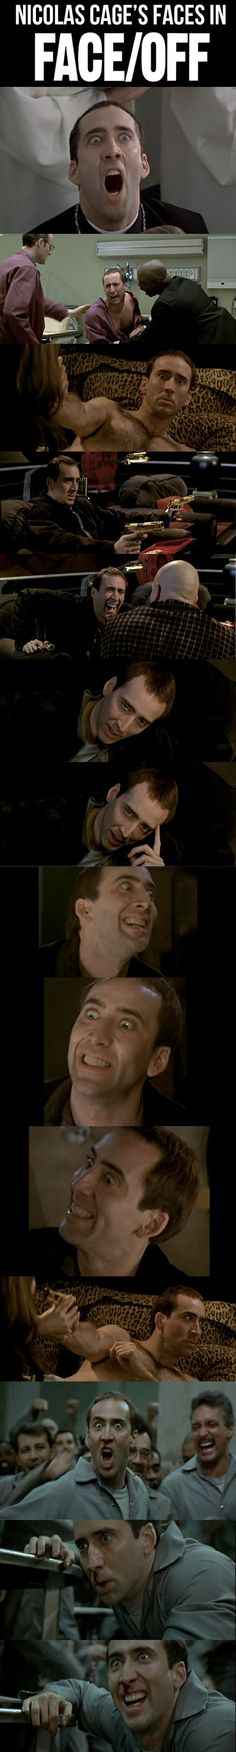 Nicolas Cage's faces are priceless… also the movie is awesome